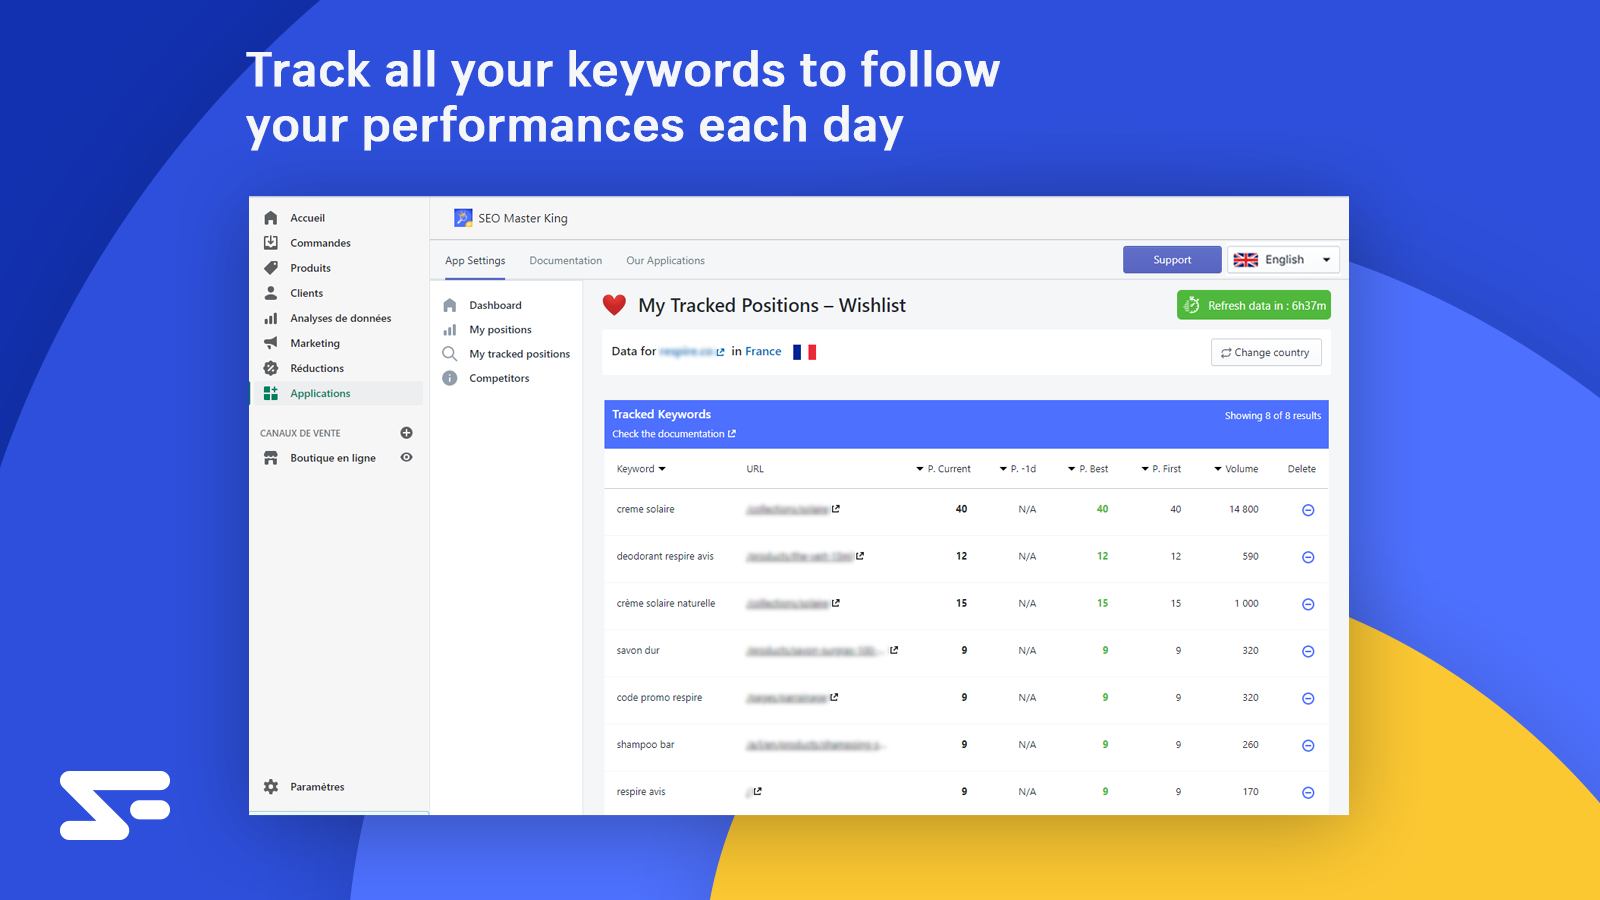 Track all your keywords to follow your performances each day